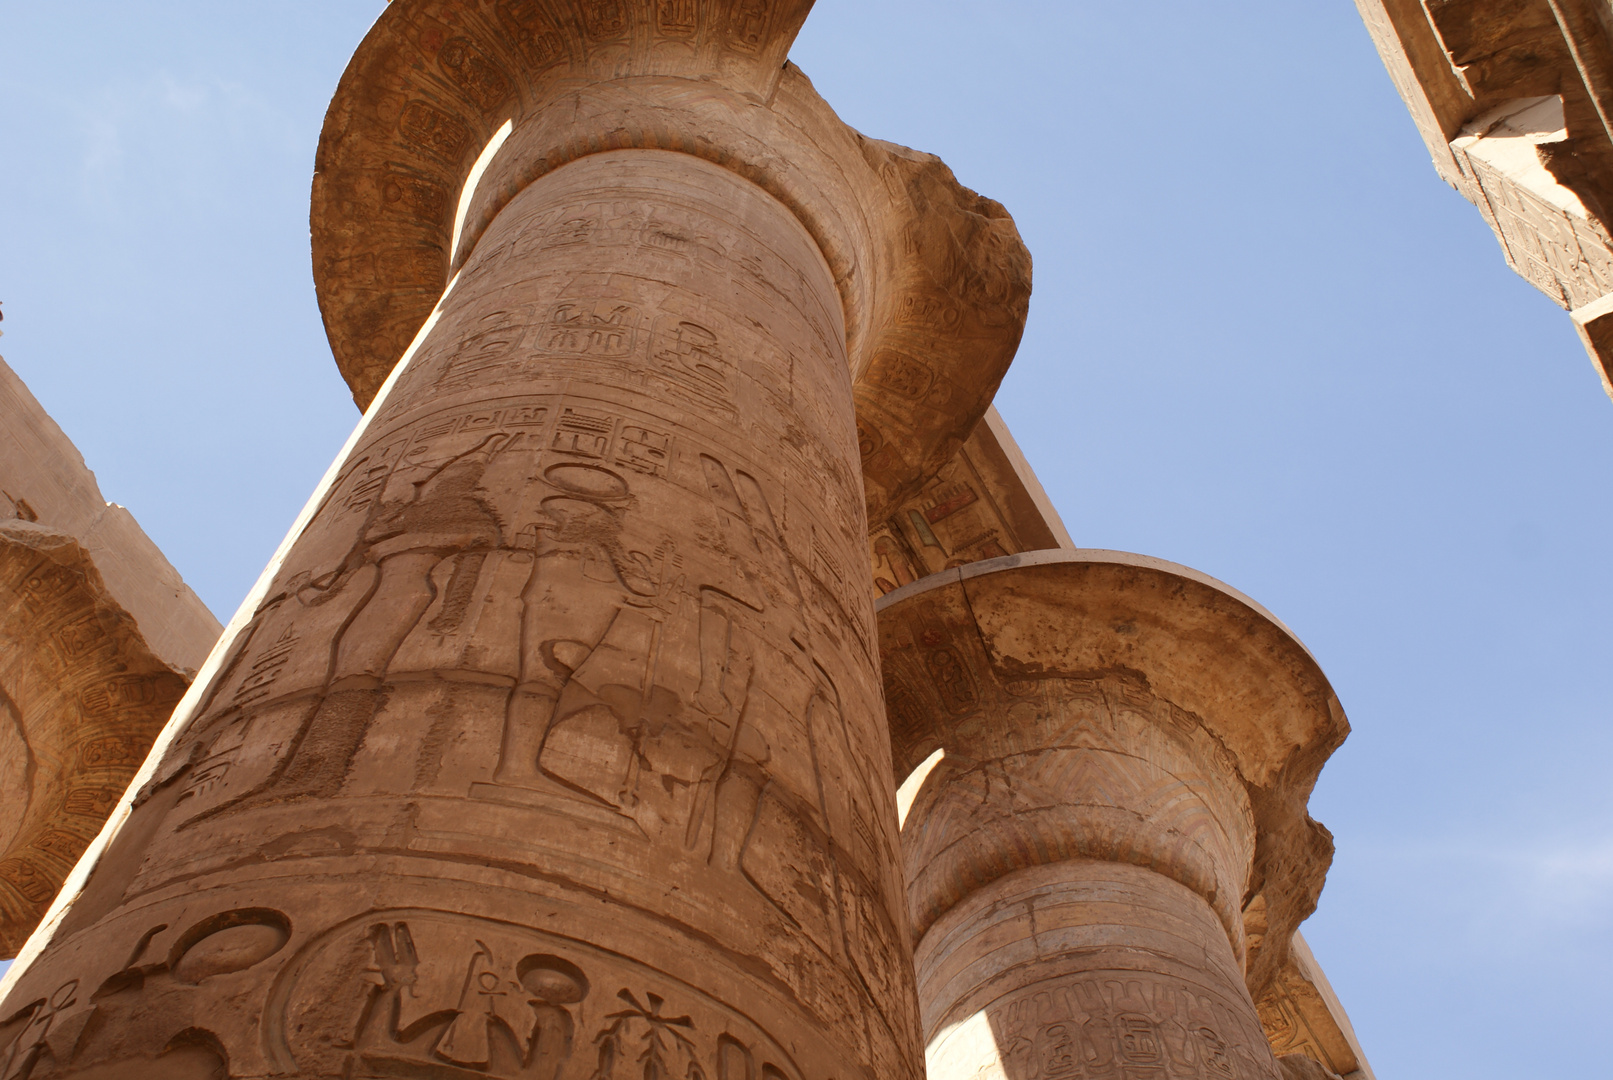 L'immensité du temple de Louxor